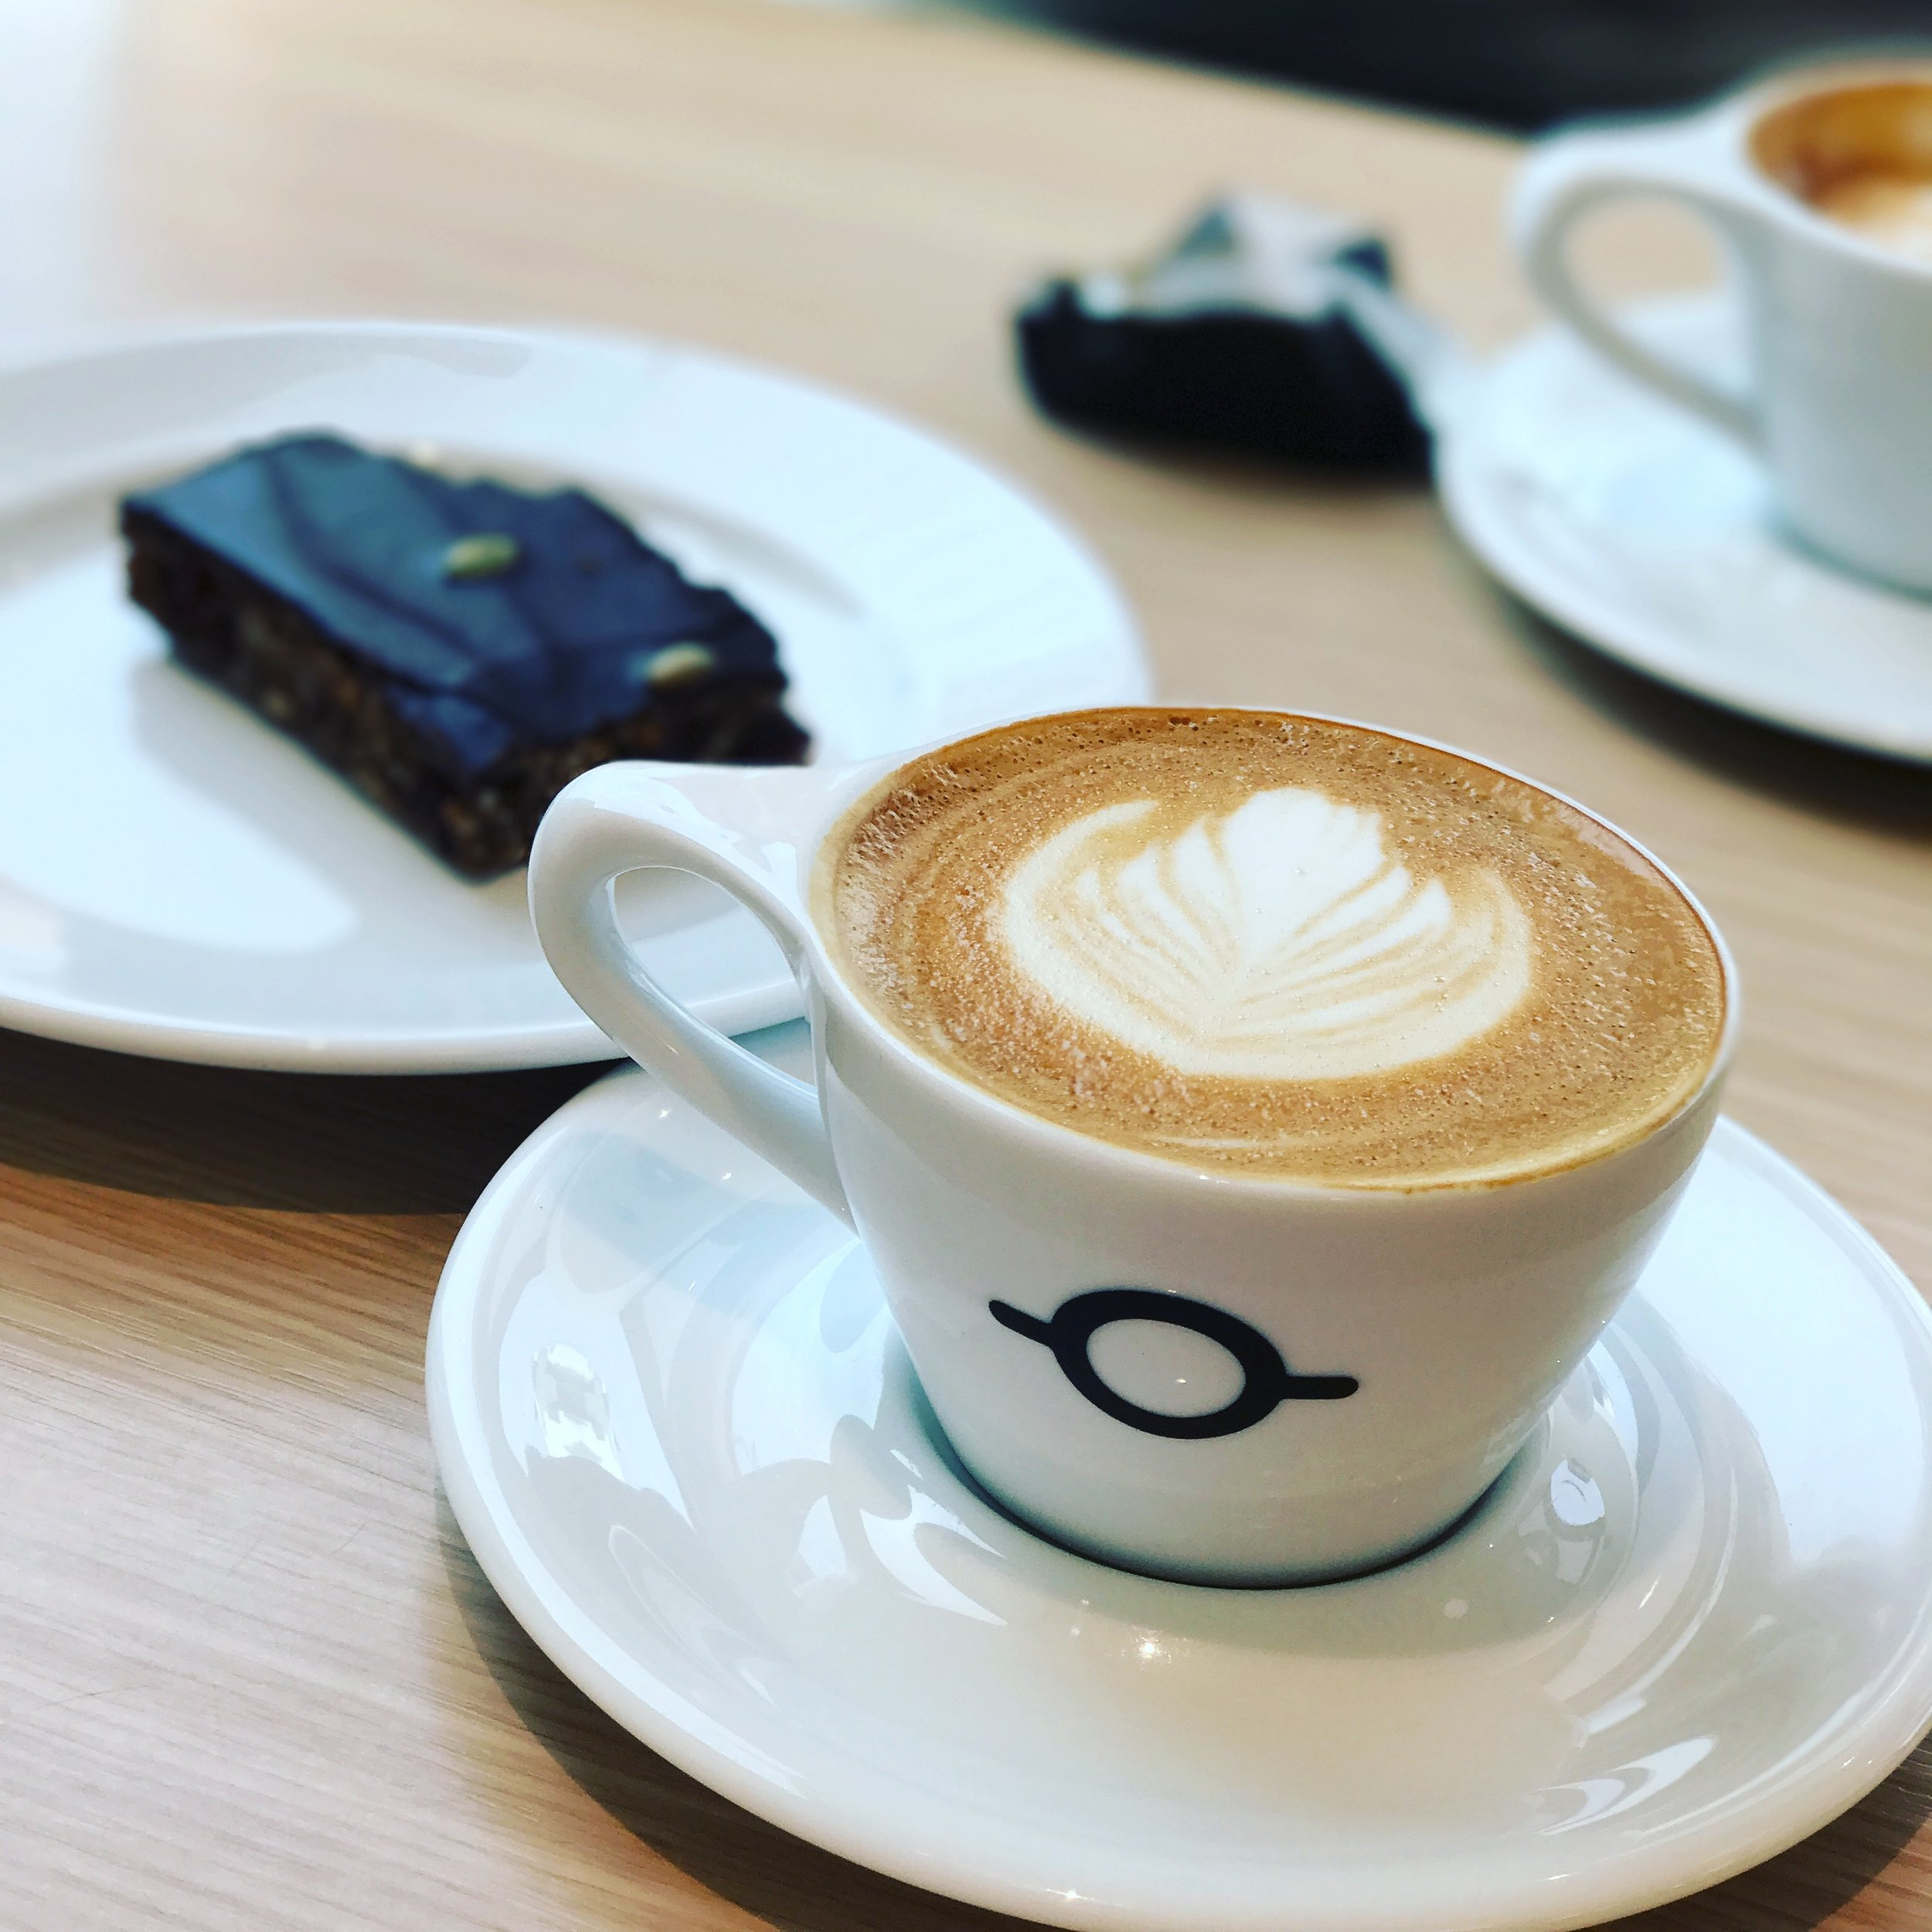 Cappuccino with oat milk and a vegan brownie at our favorite spot Te & Kaffi